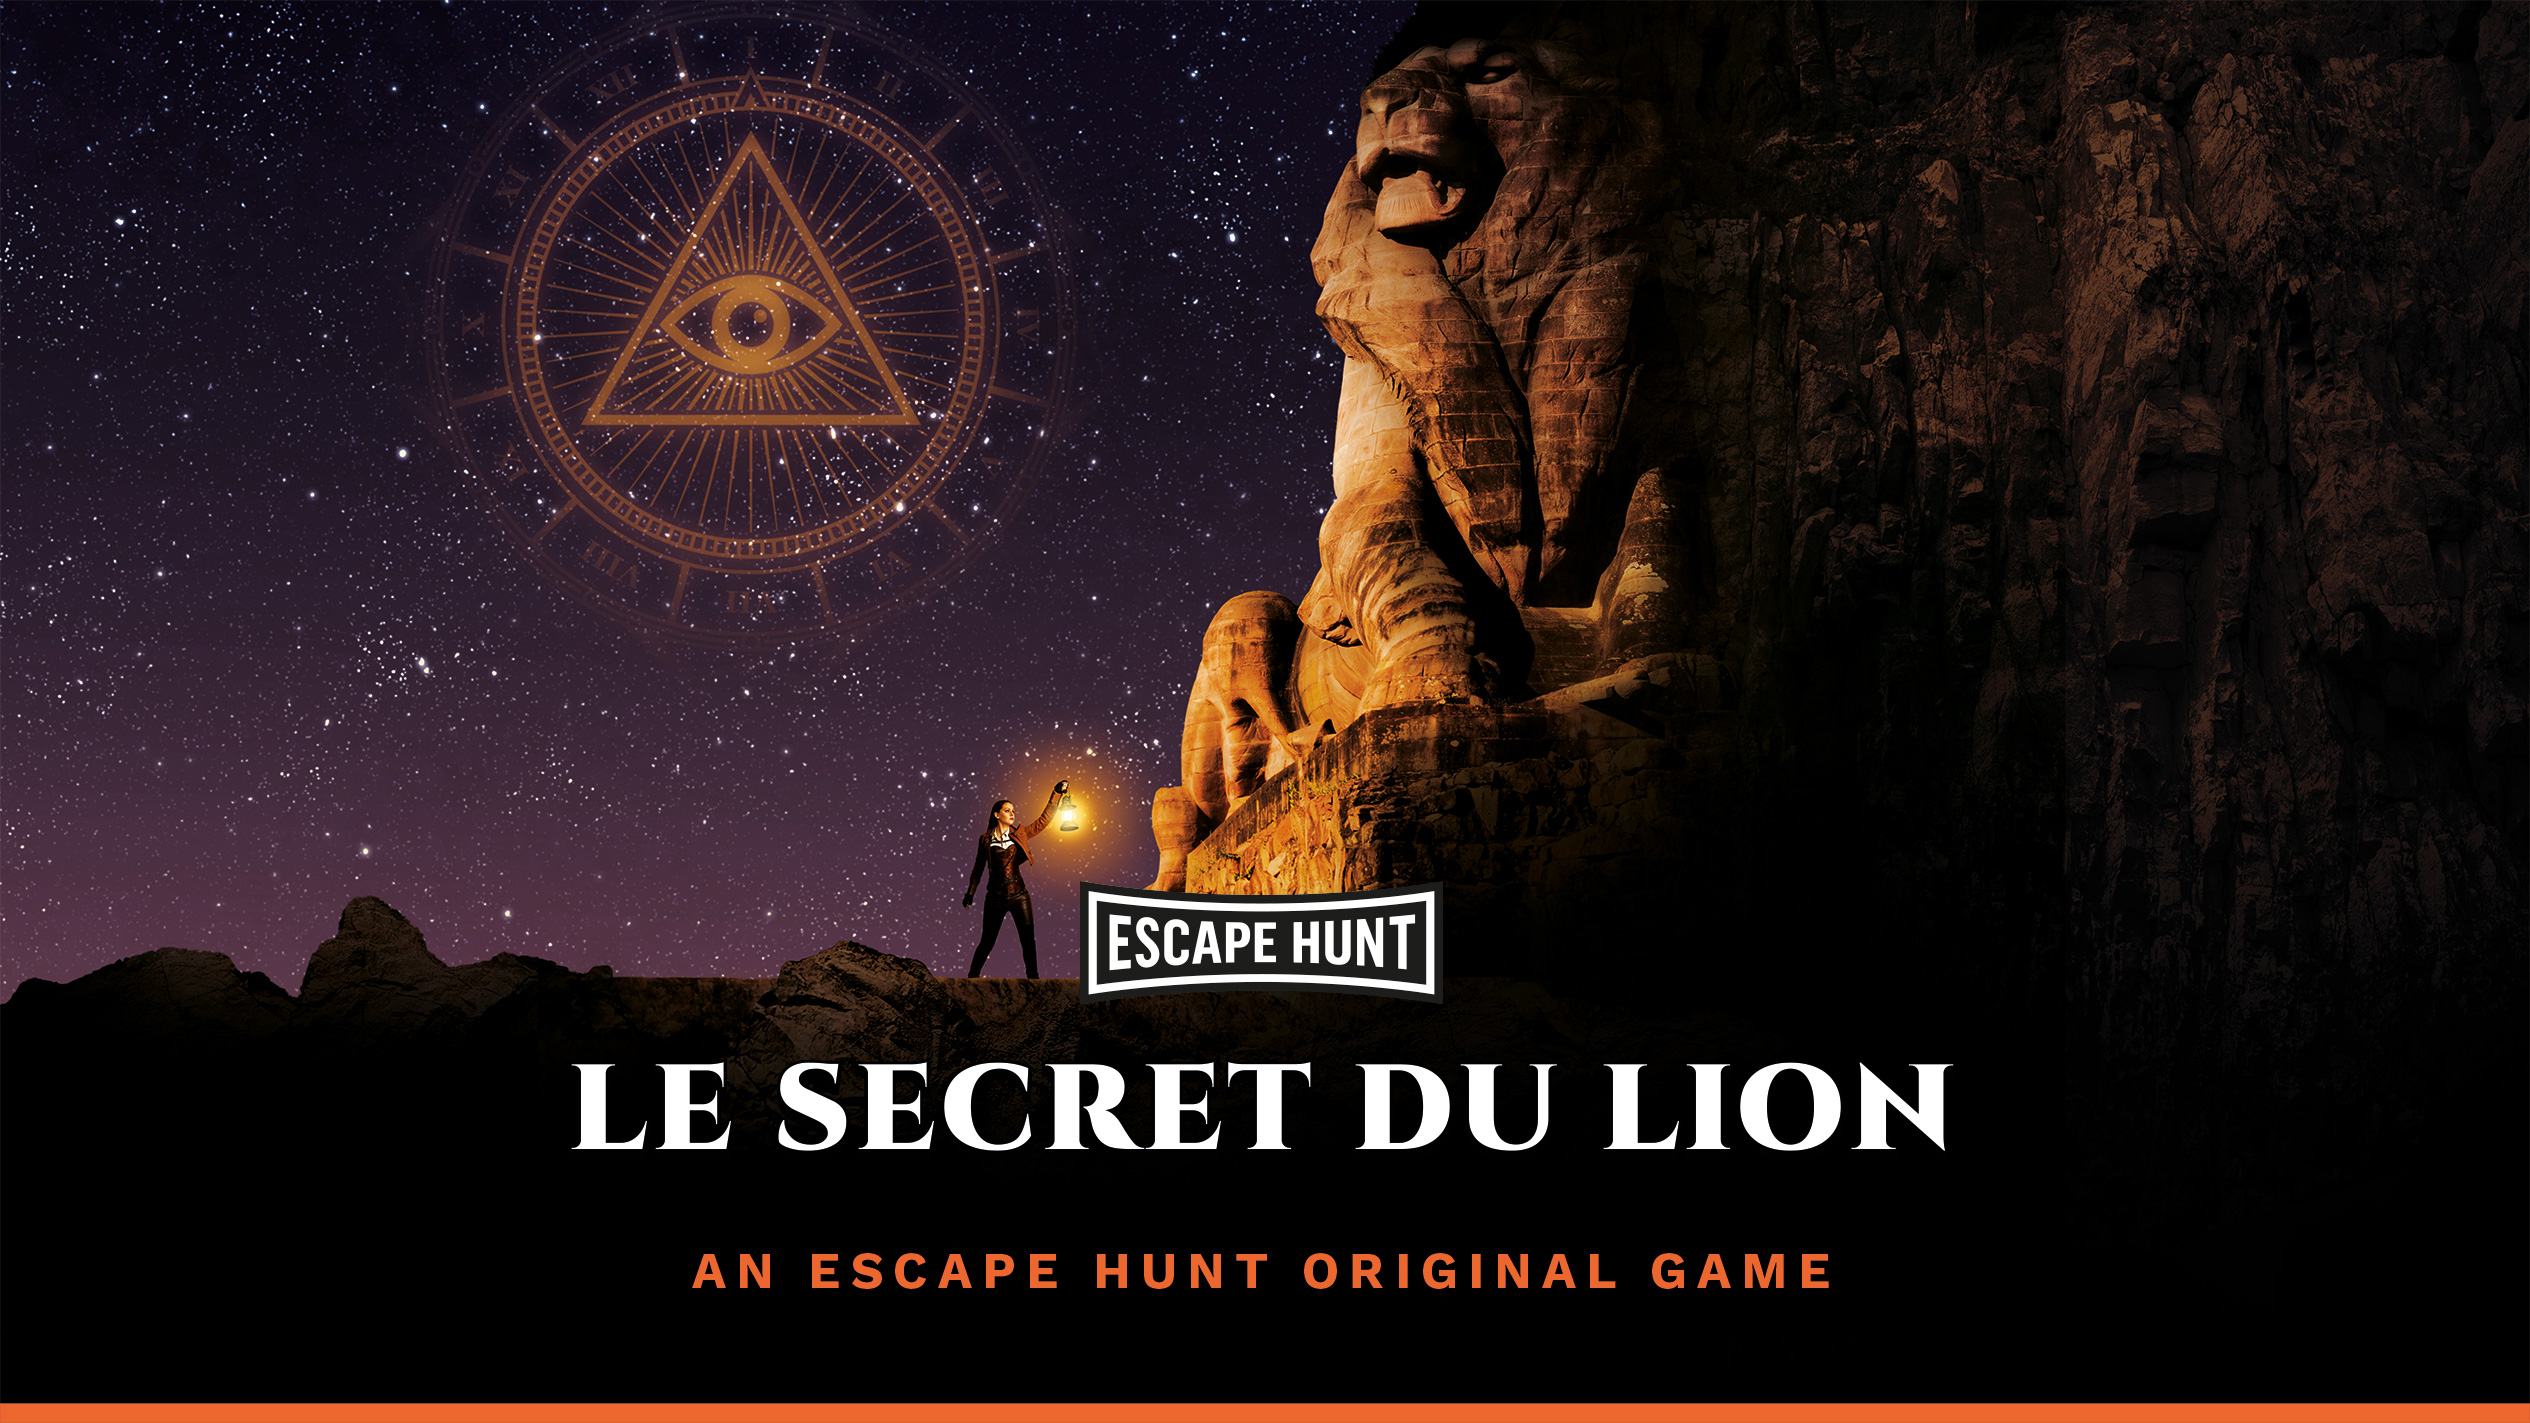 https://escapehunt.com/wp-content/uploads/sites/56/2018/10/EH-Local-Game-Hero-The-Secret-of-the-Lion-French.jpg